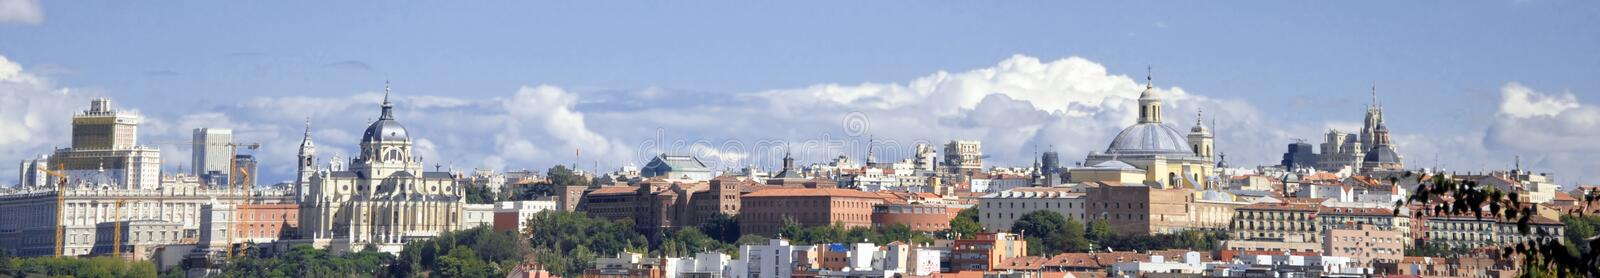 Madrid 2 foto de stock royalty free